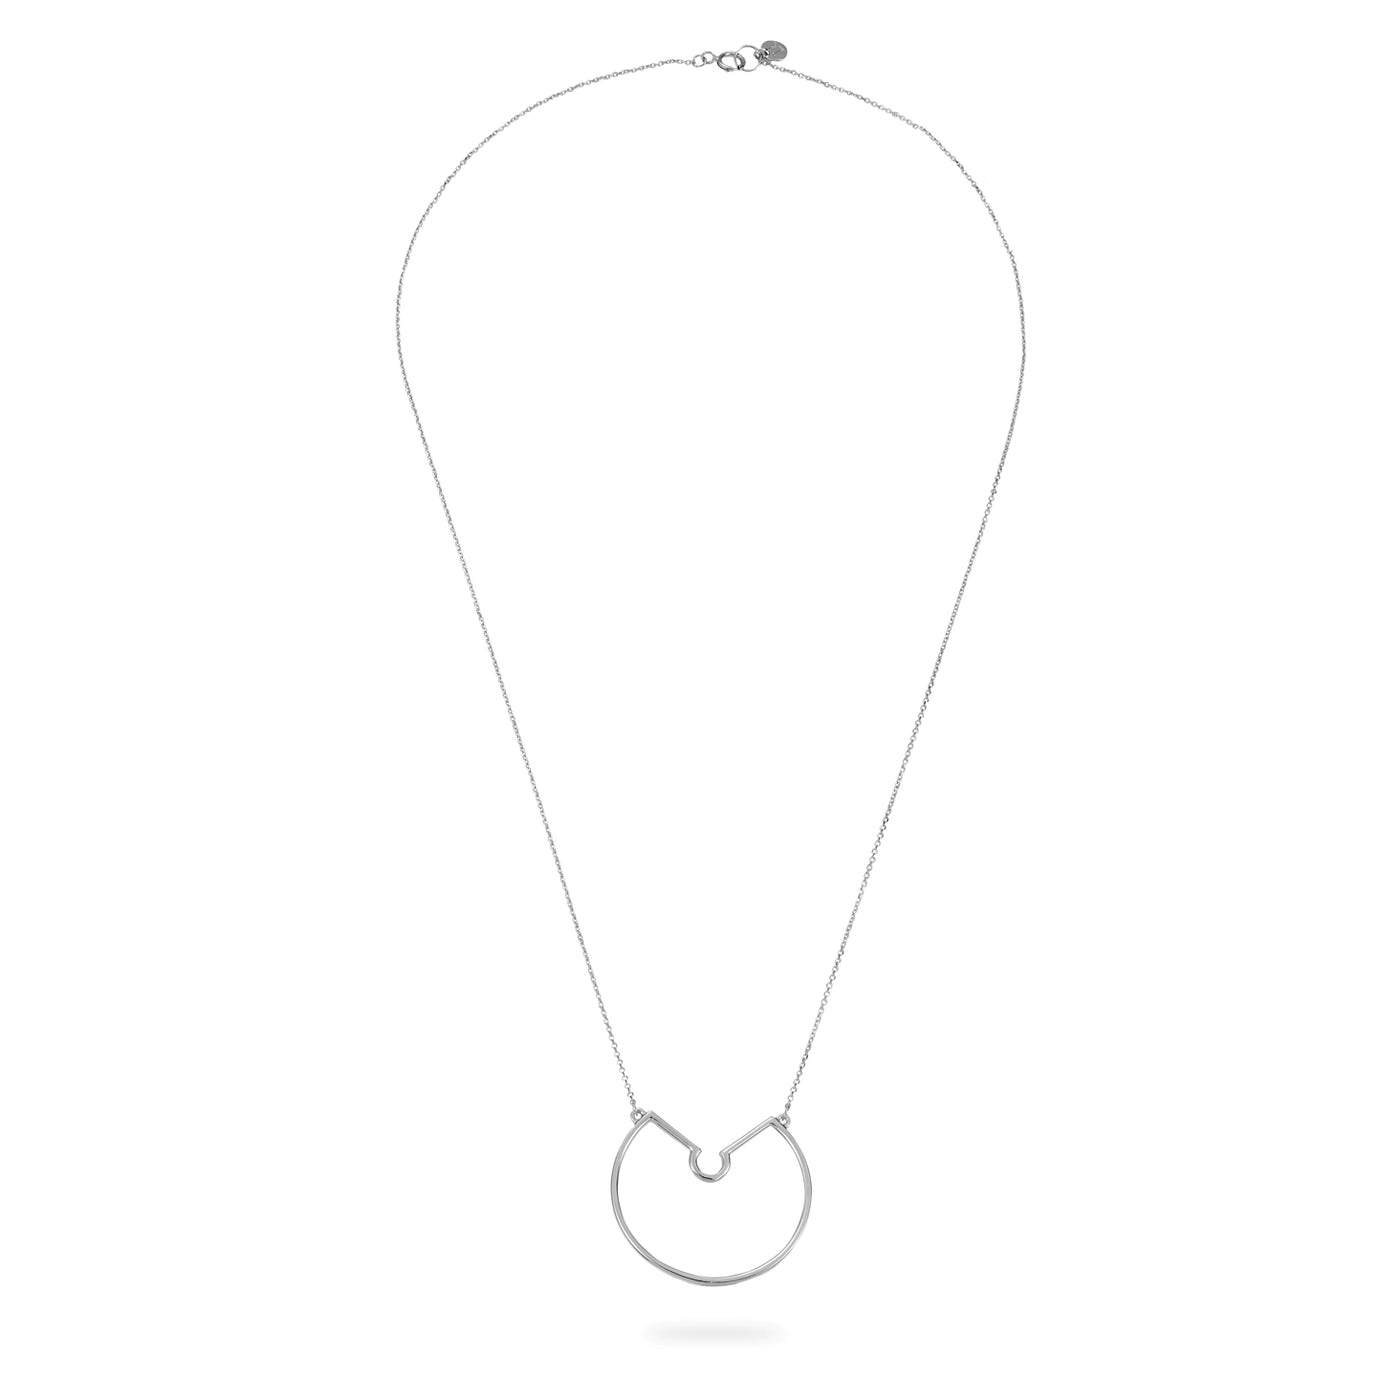 Luke Rose Jewellery rock collection silver hoop necklace